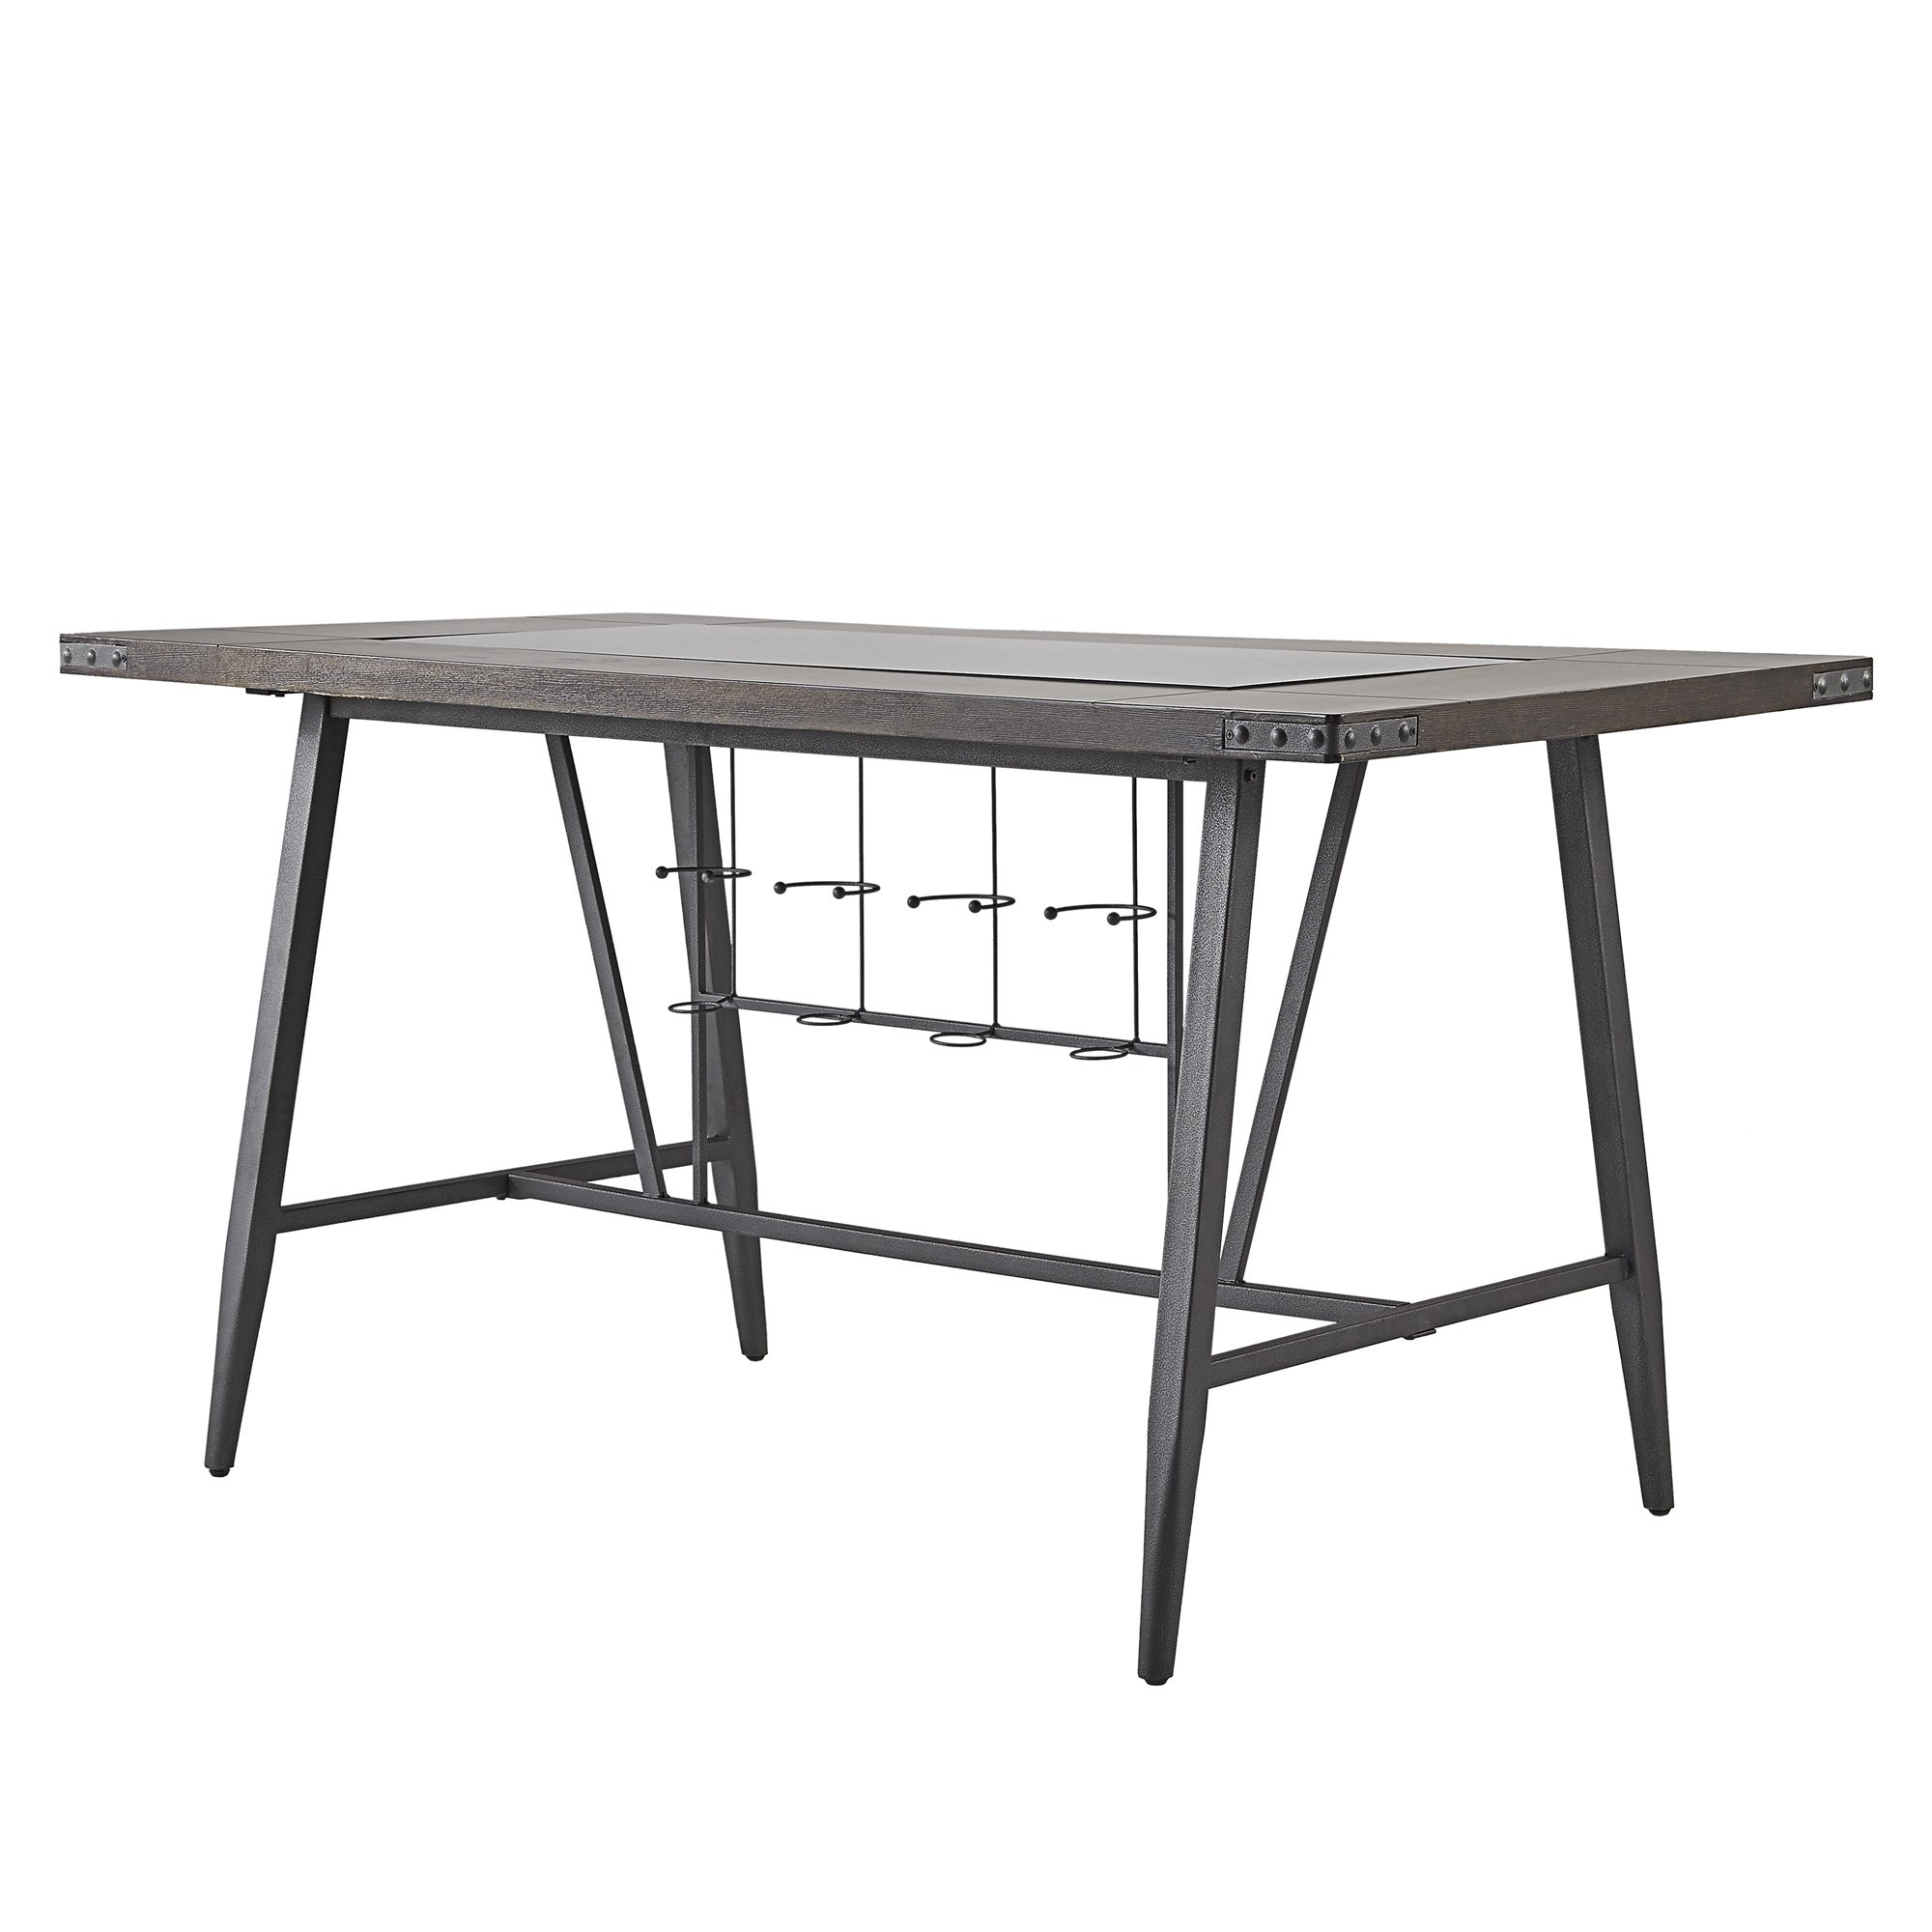 Shop Harley Counter Height Dining Table With Wine Rackinspire Q Pertaining To Current Ina Matte Black 60 Inch Counter Tables With Frosted Glass (Image 17 of 20)